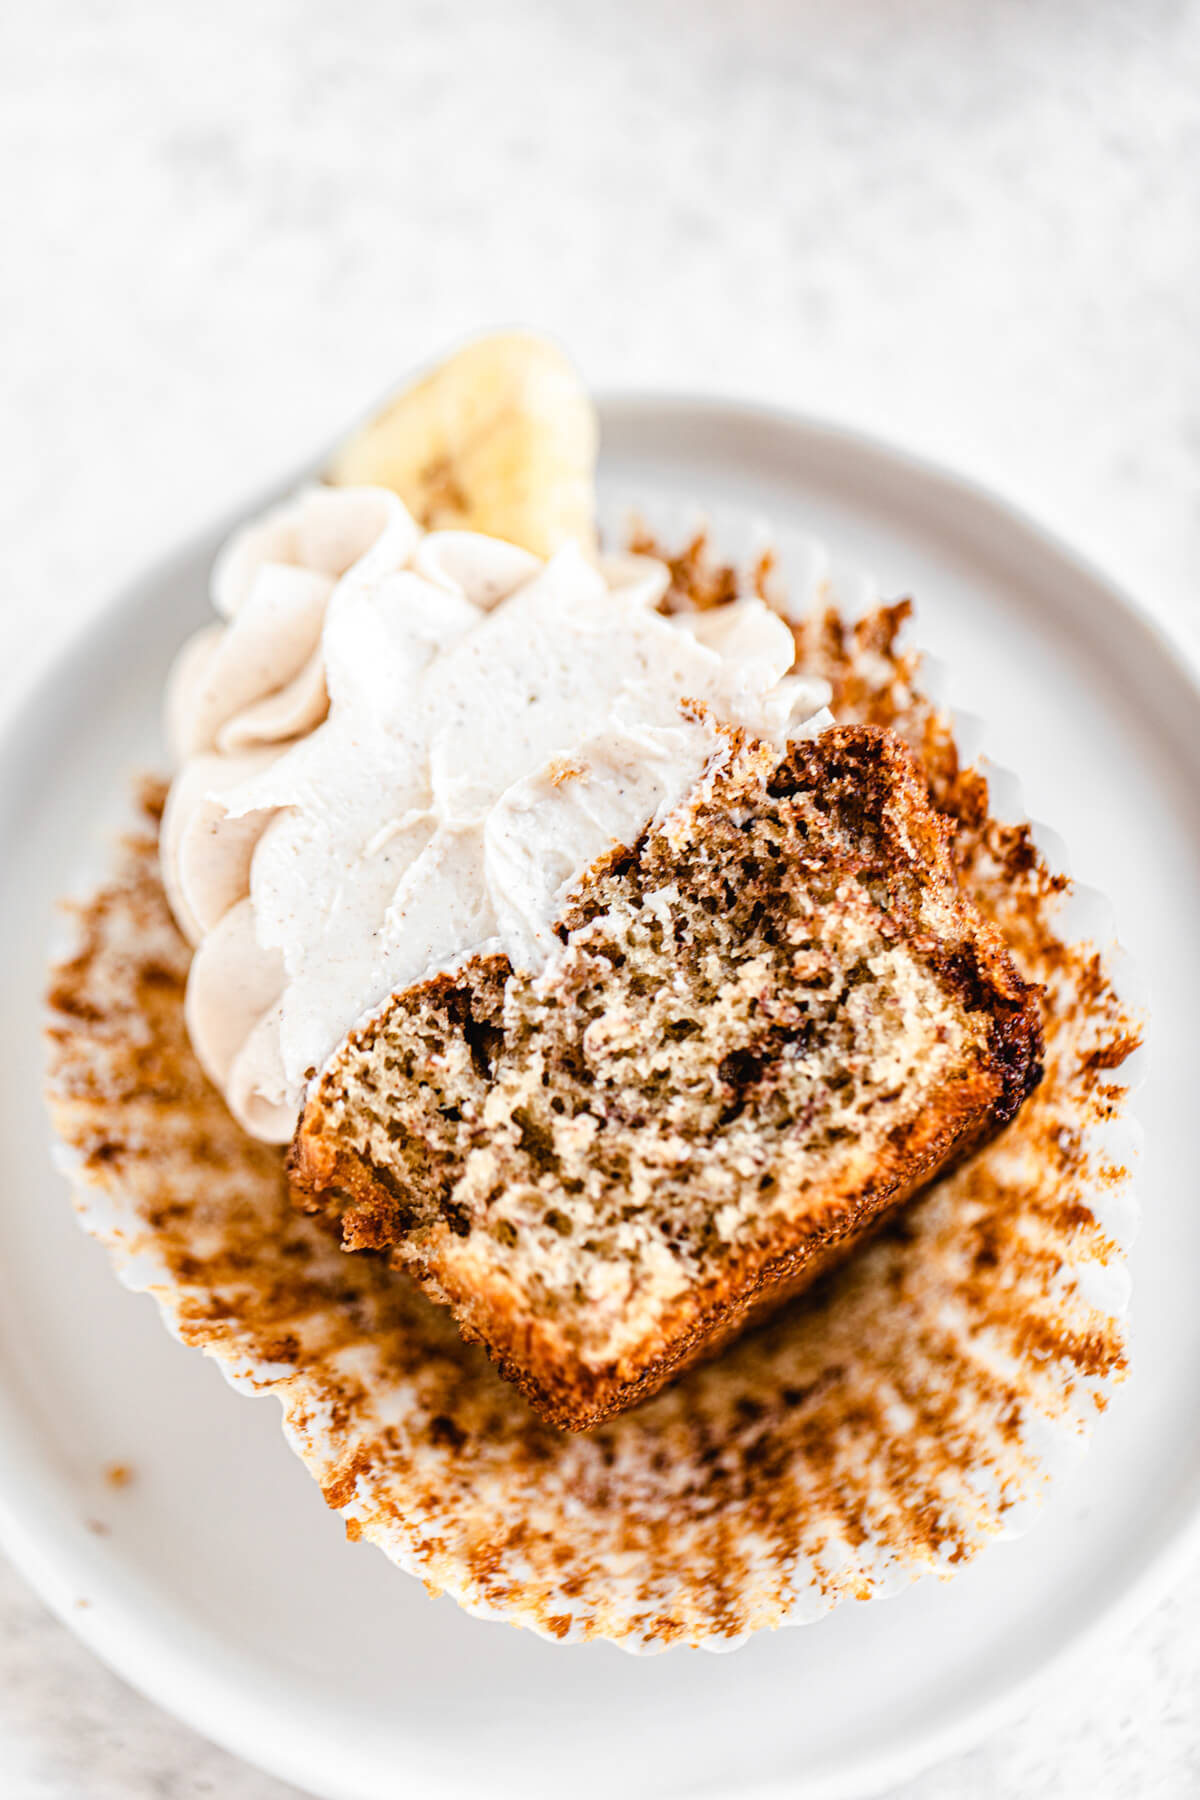 halved cinnamon swirl cupcake laying in a white appetizer plate